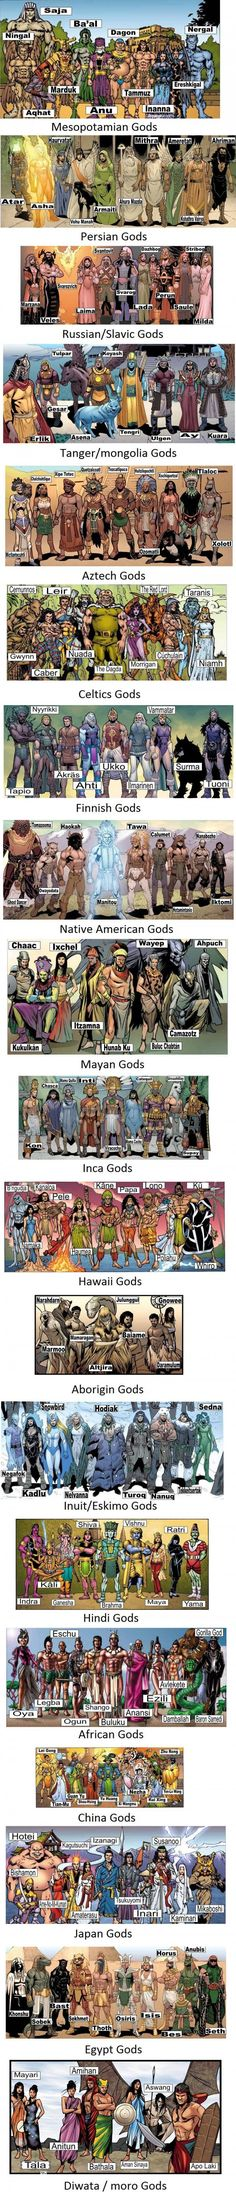 Gods via https://i.imgur.com/xiGM53m.jpg By Ikinhaszkarmakplx2 On May 18, 2016 at 03:12PM, Also Find More Infographics at @ http://www.live...